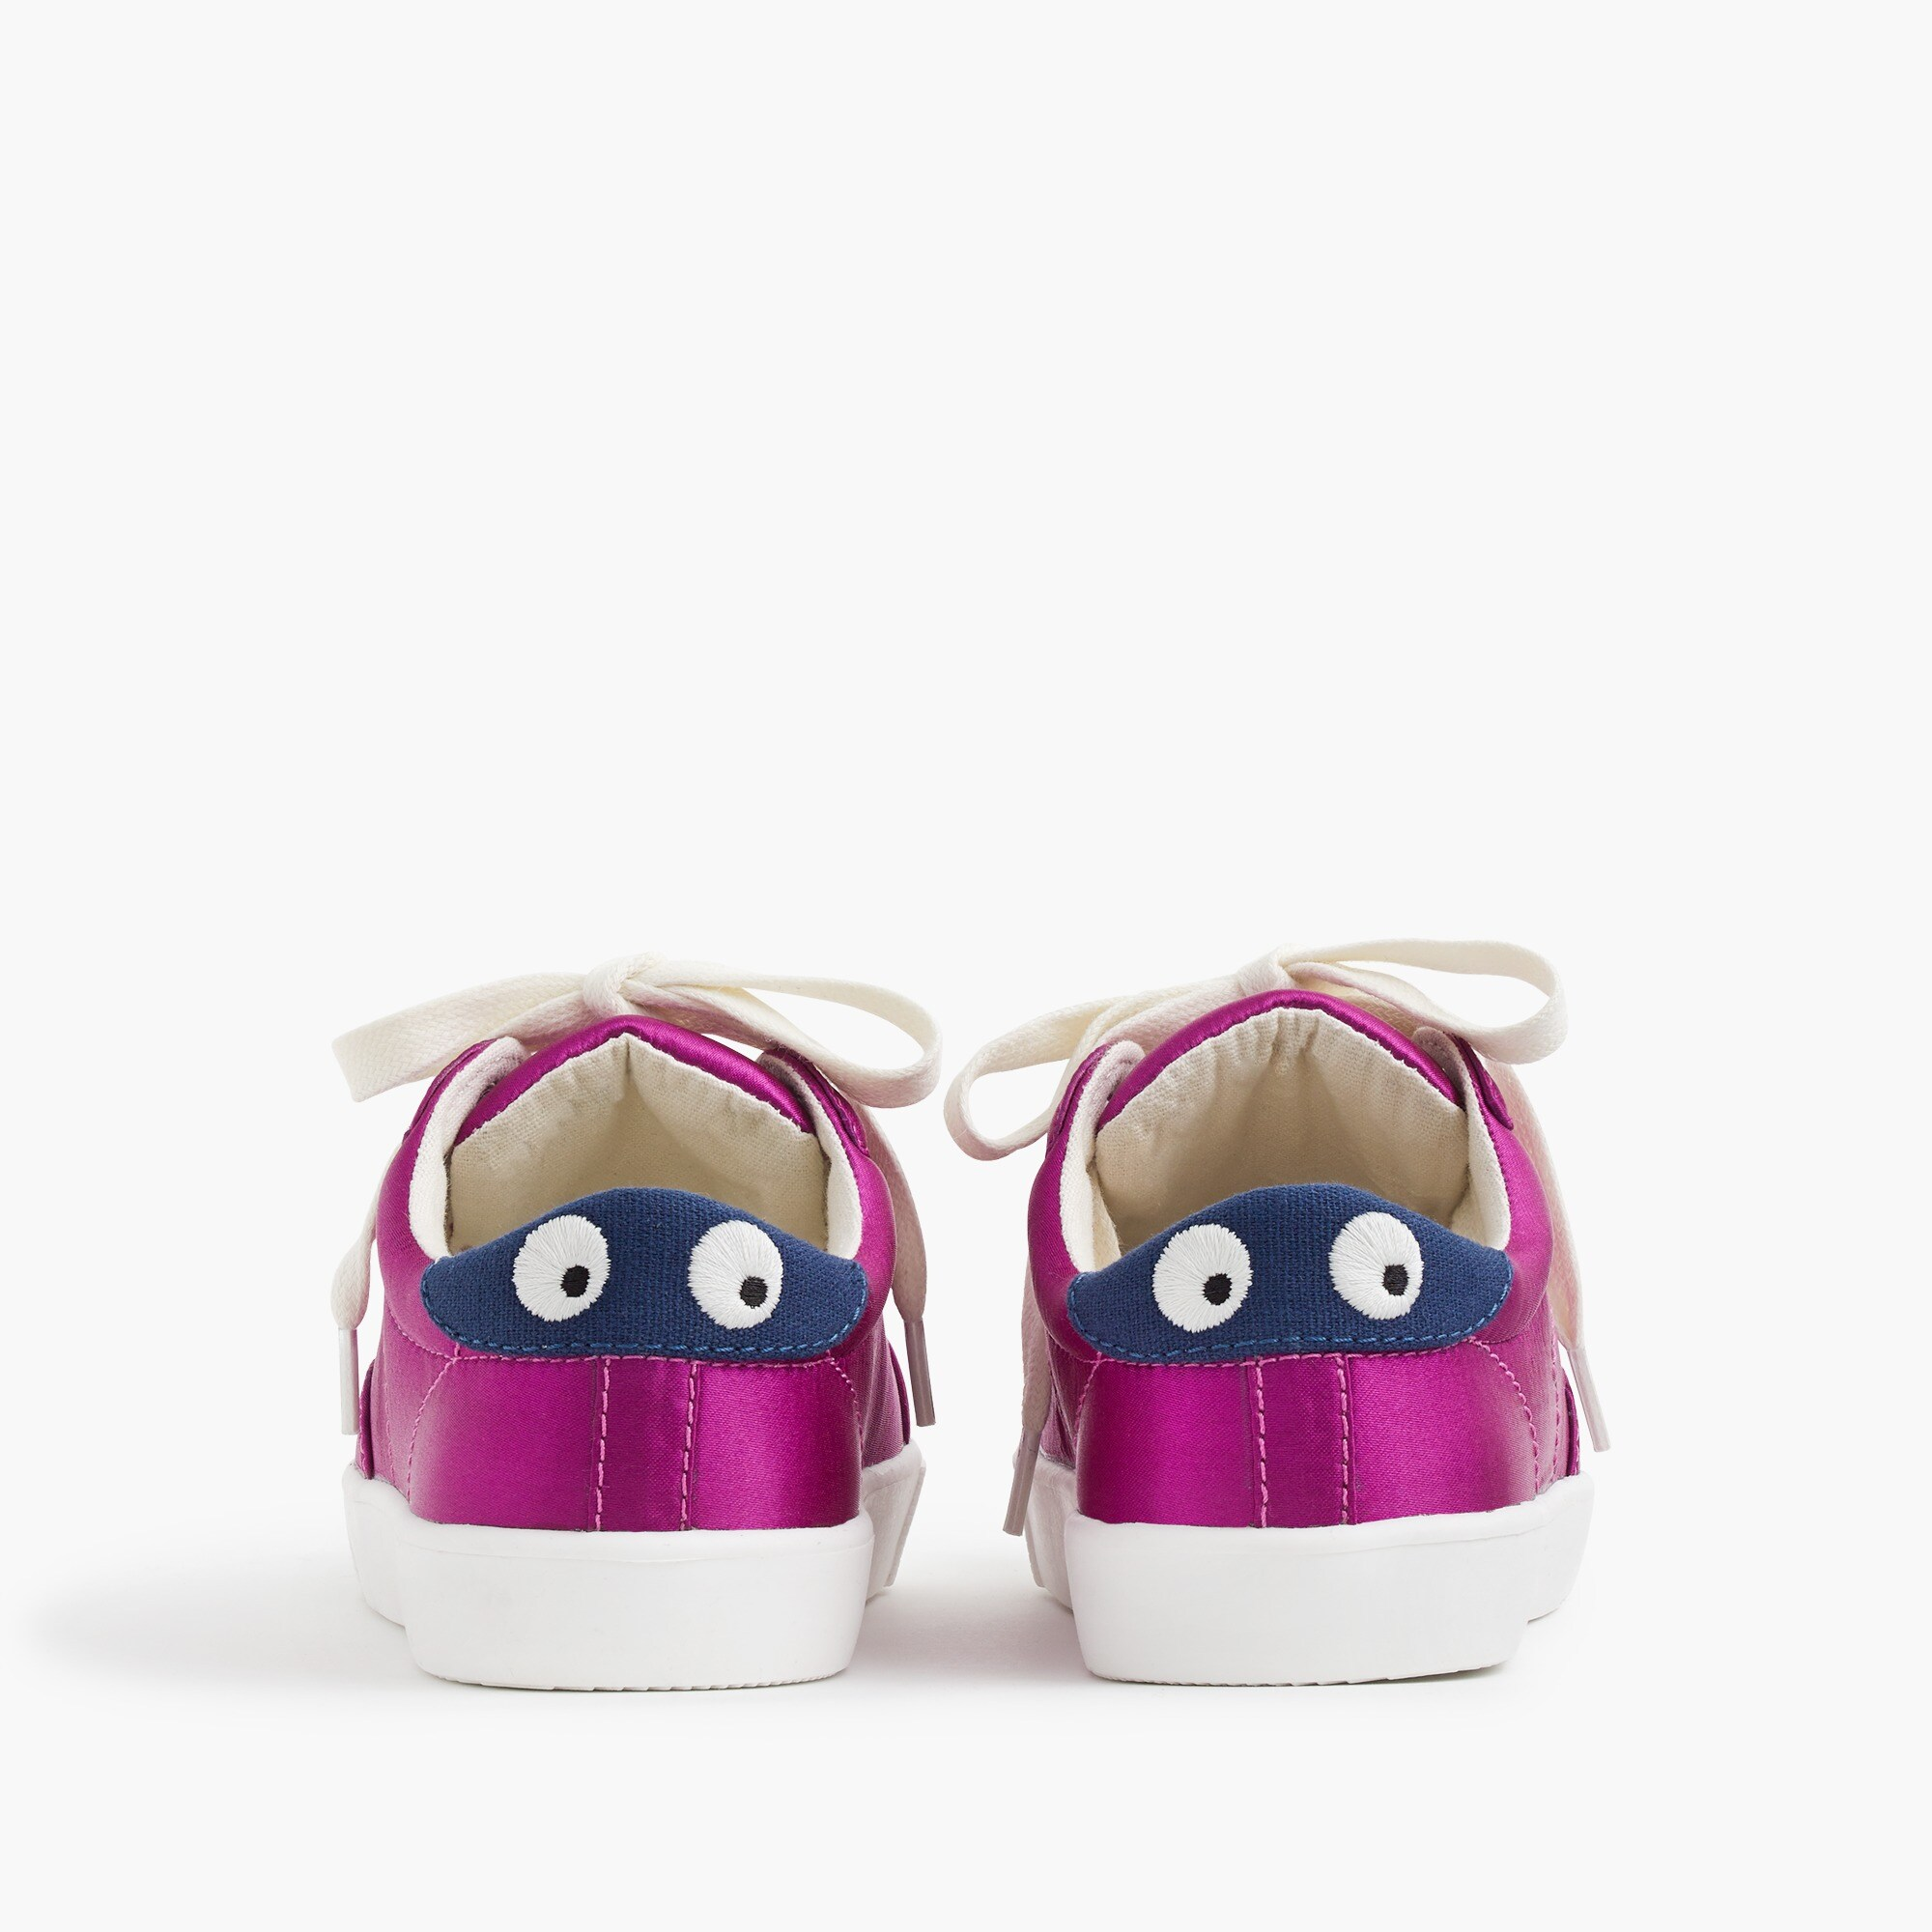 Image 3 for Kids' satin lace up Max the Monster sneakers